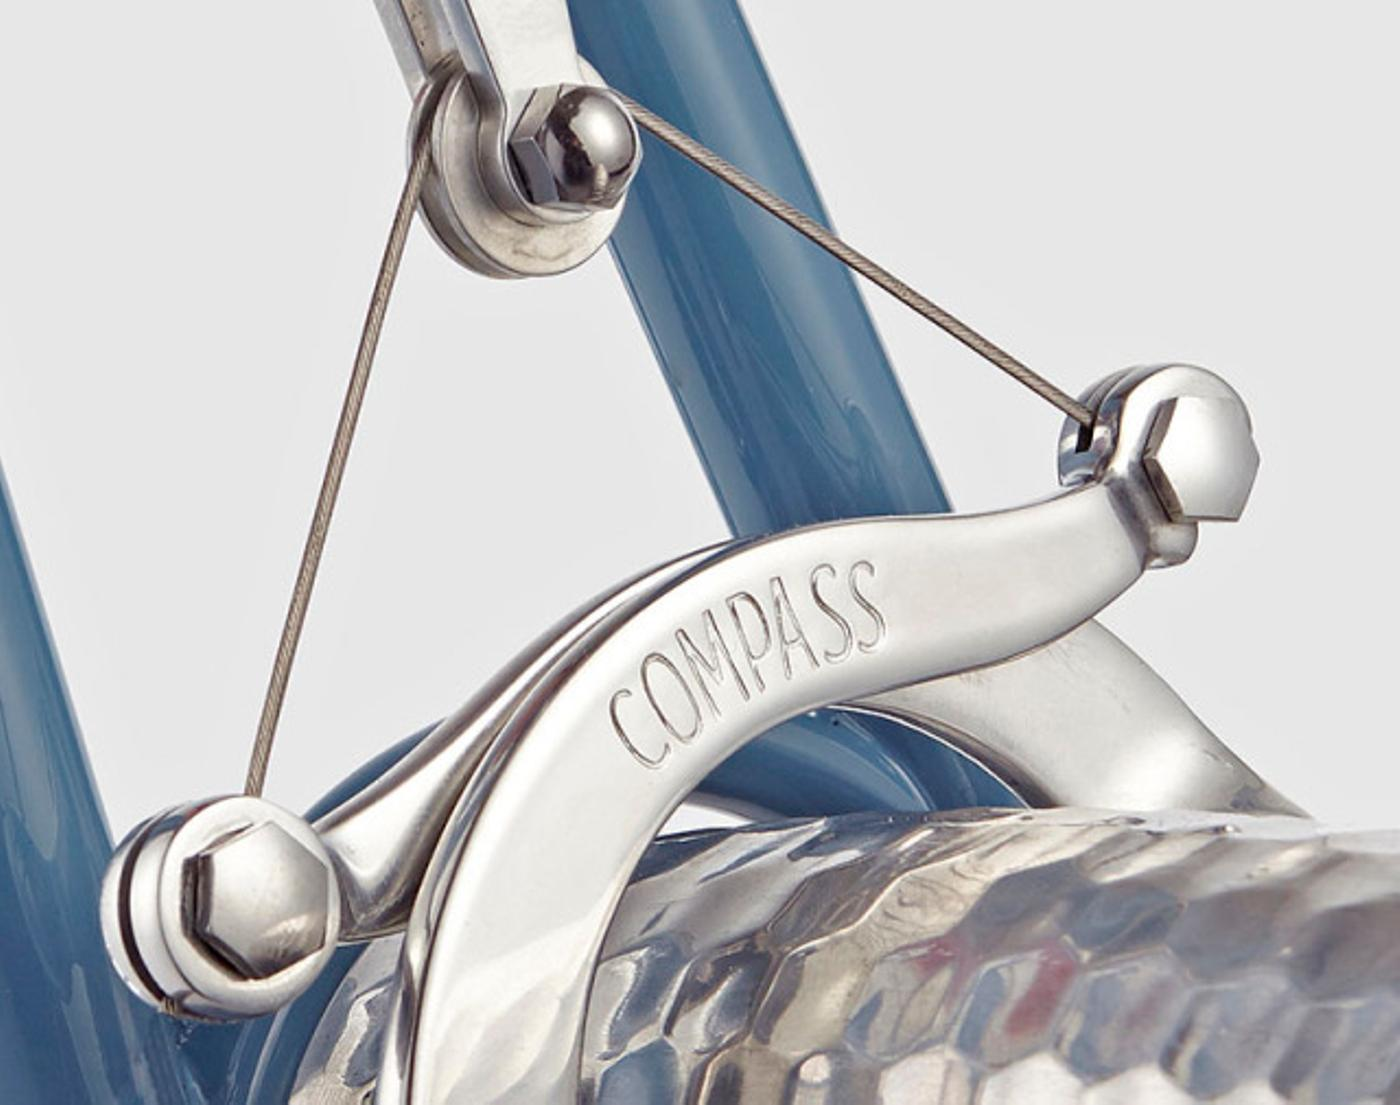 Bicycle Quarterly Knows Straddle Cables